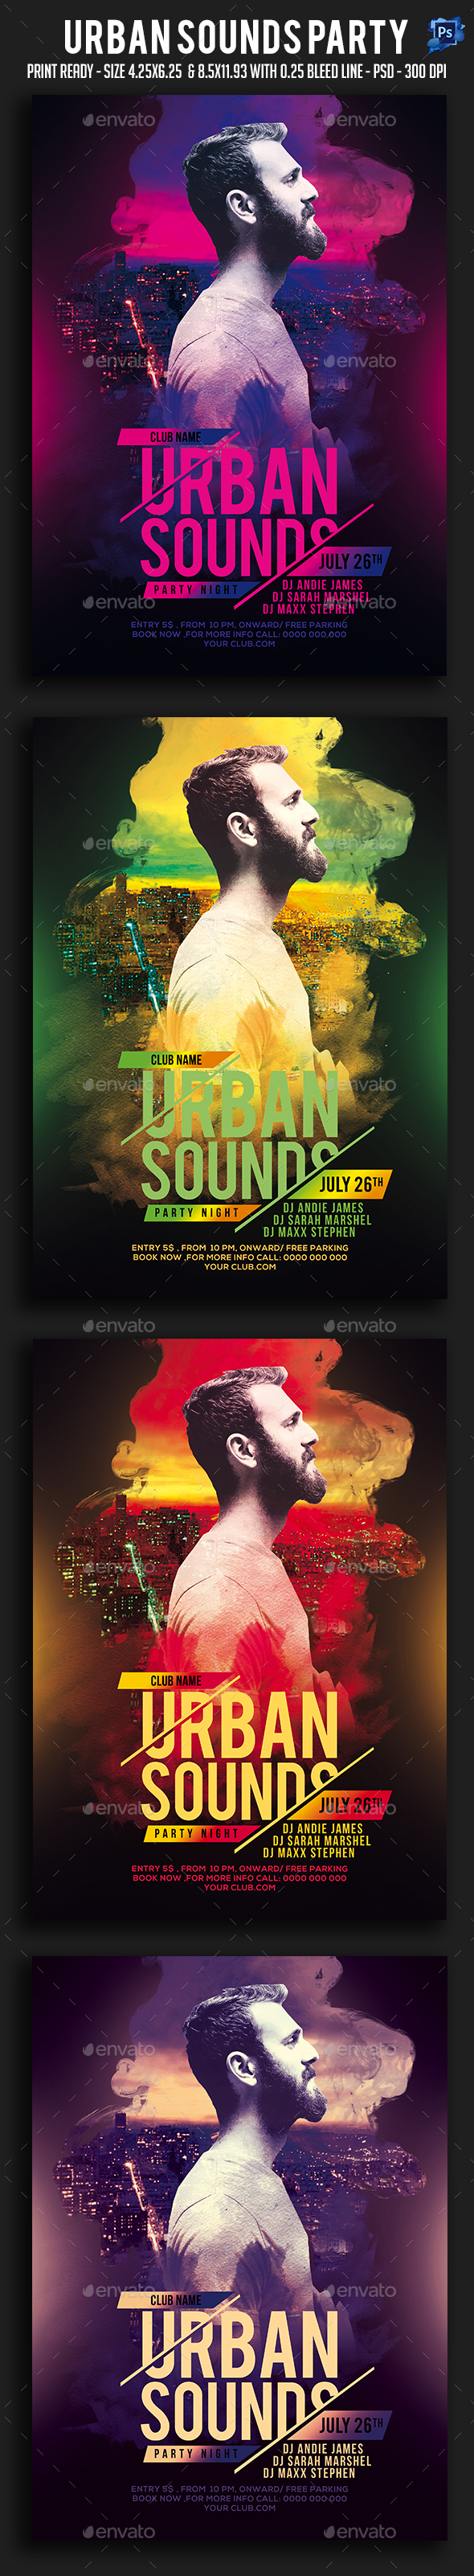 GraphicRiver Urban Sounds Party Flyer 20708315